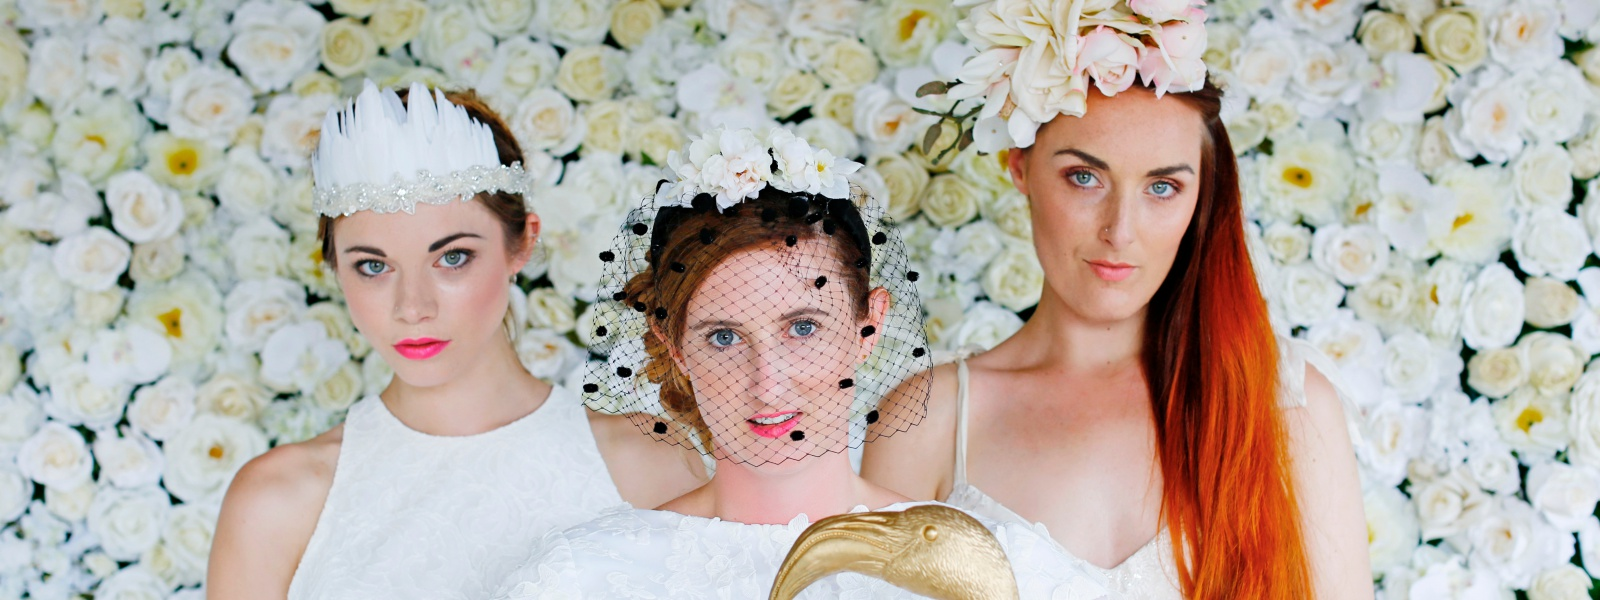 A fun fresh take on vintage inspired wedding accessories